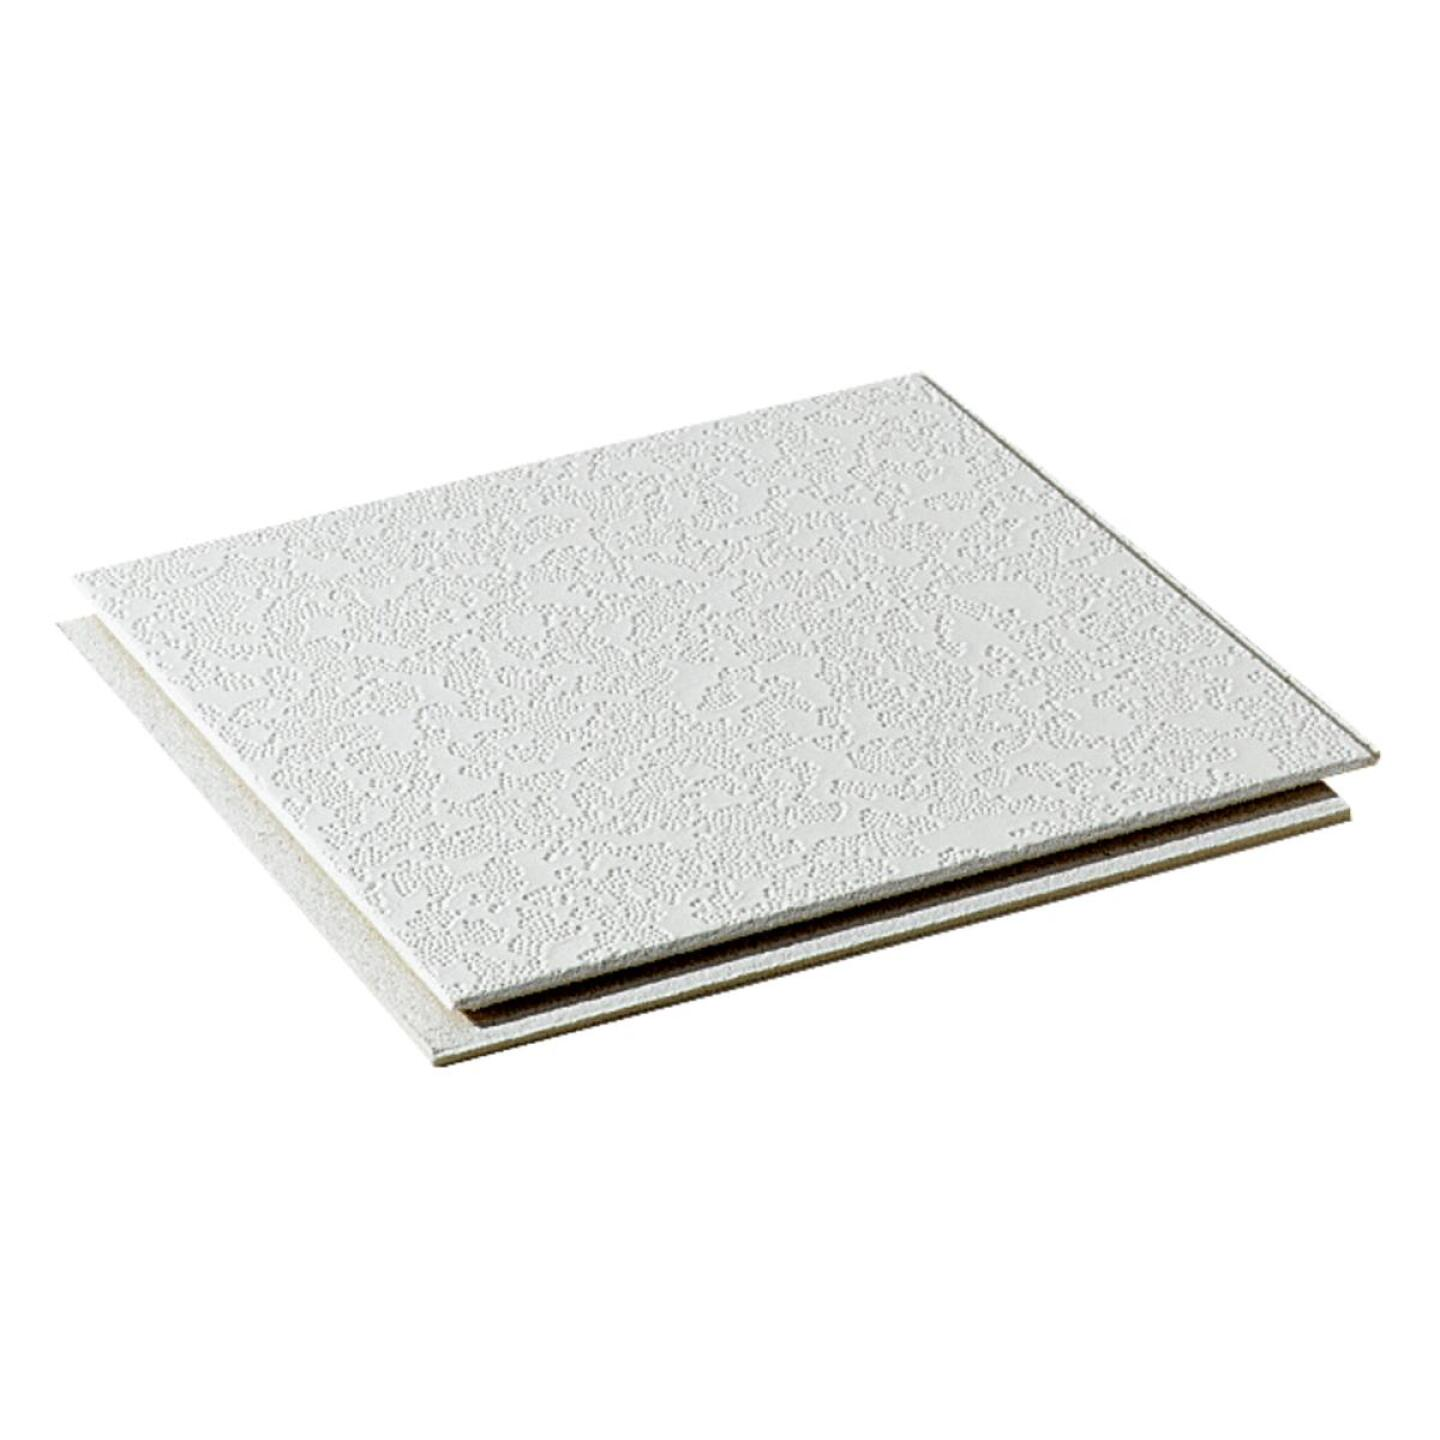 BP Silencio Cambray 12 In. x 12 In. White Wood Fiber Nonsuspended Ceiling Tile (32-Count) Image 2